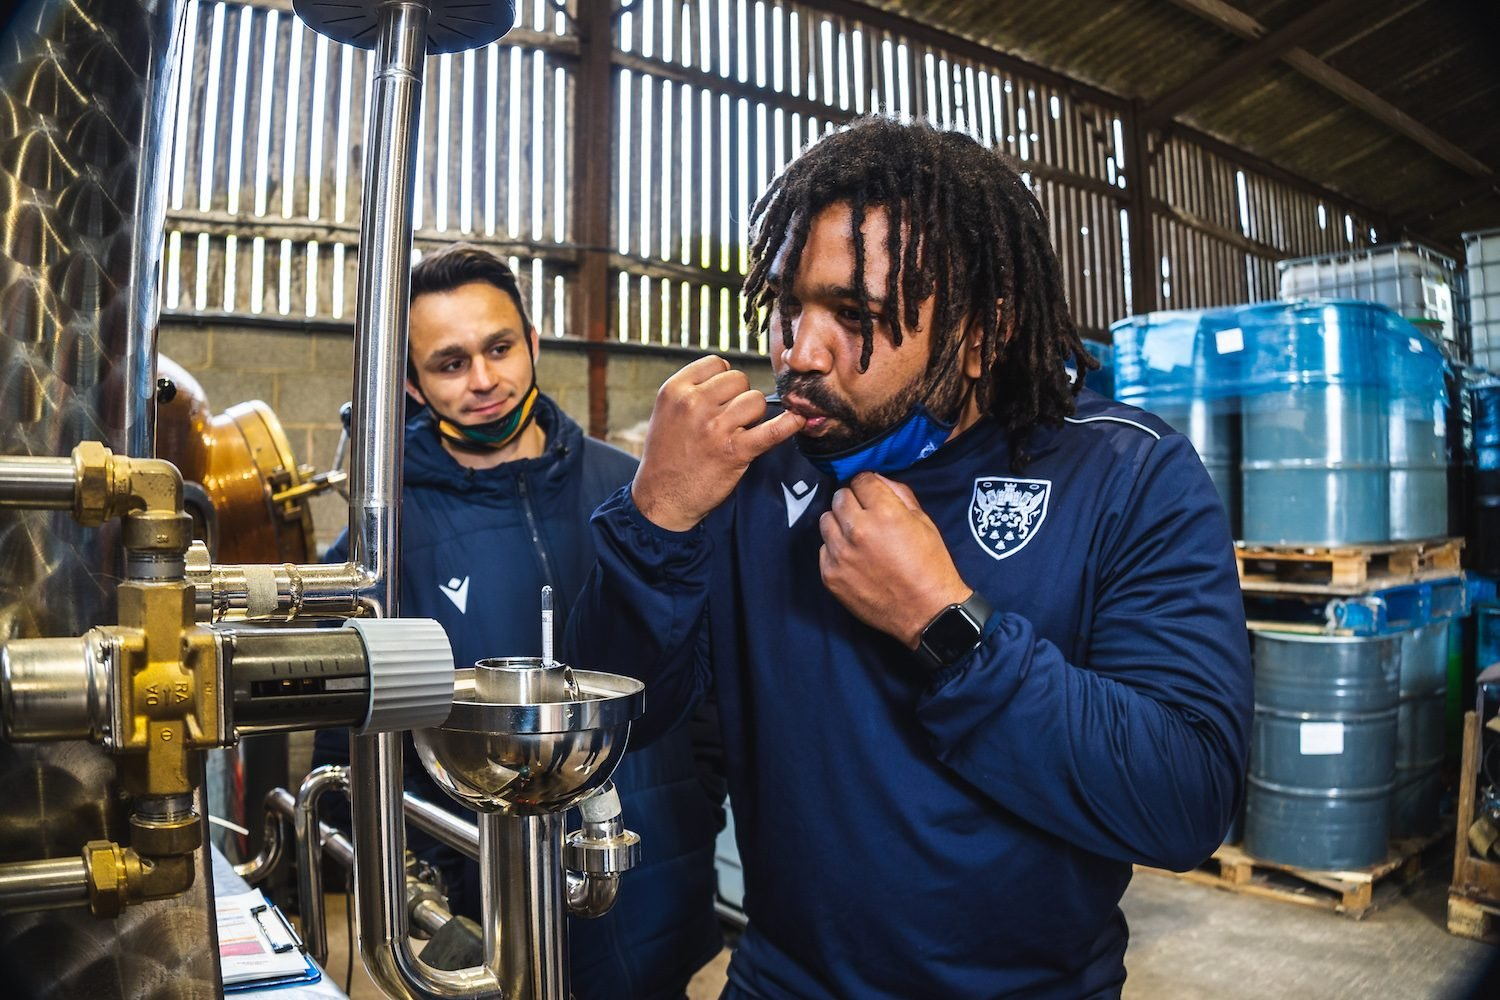 Saints' players were on hand to help bottling and labelling the limited-edition Gin